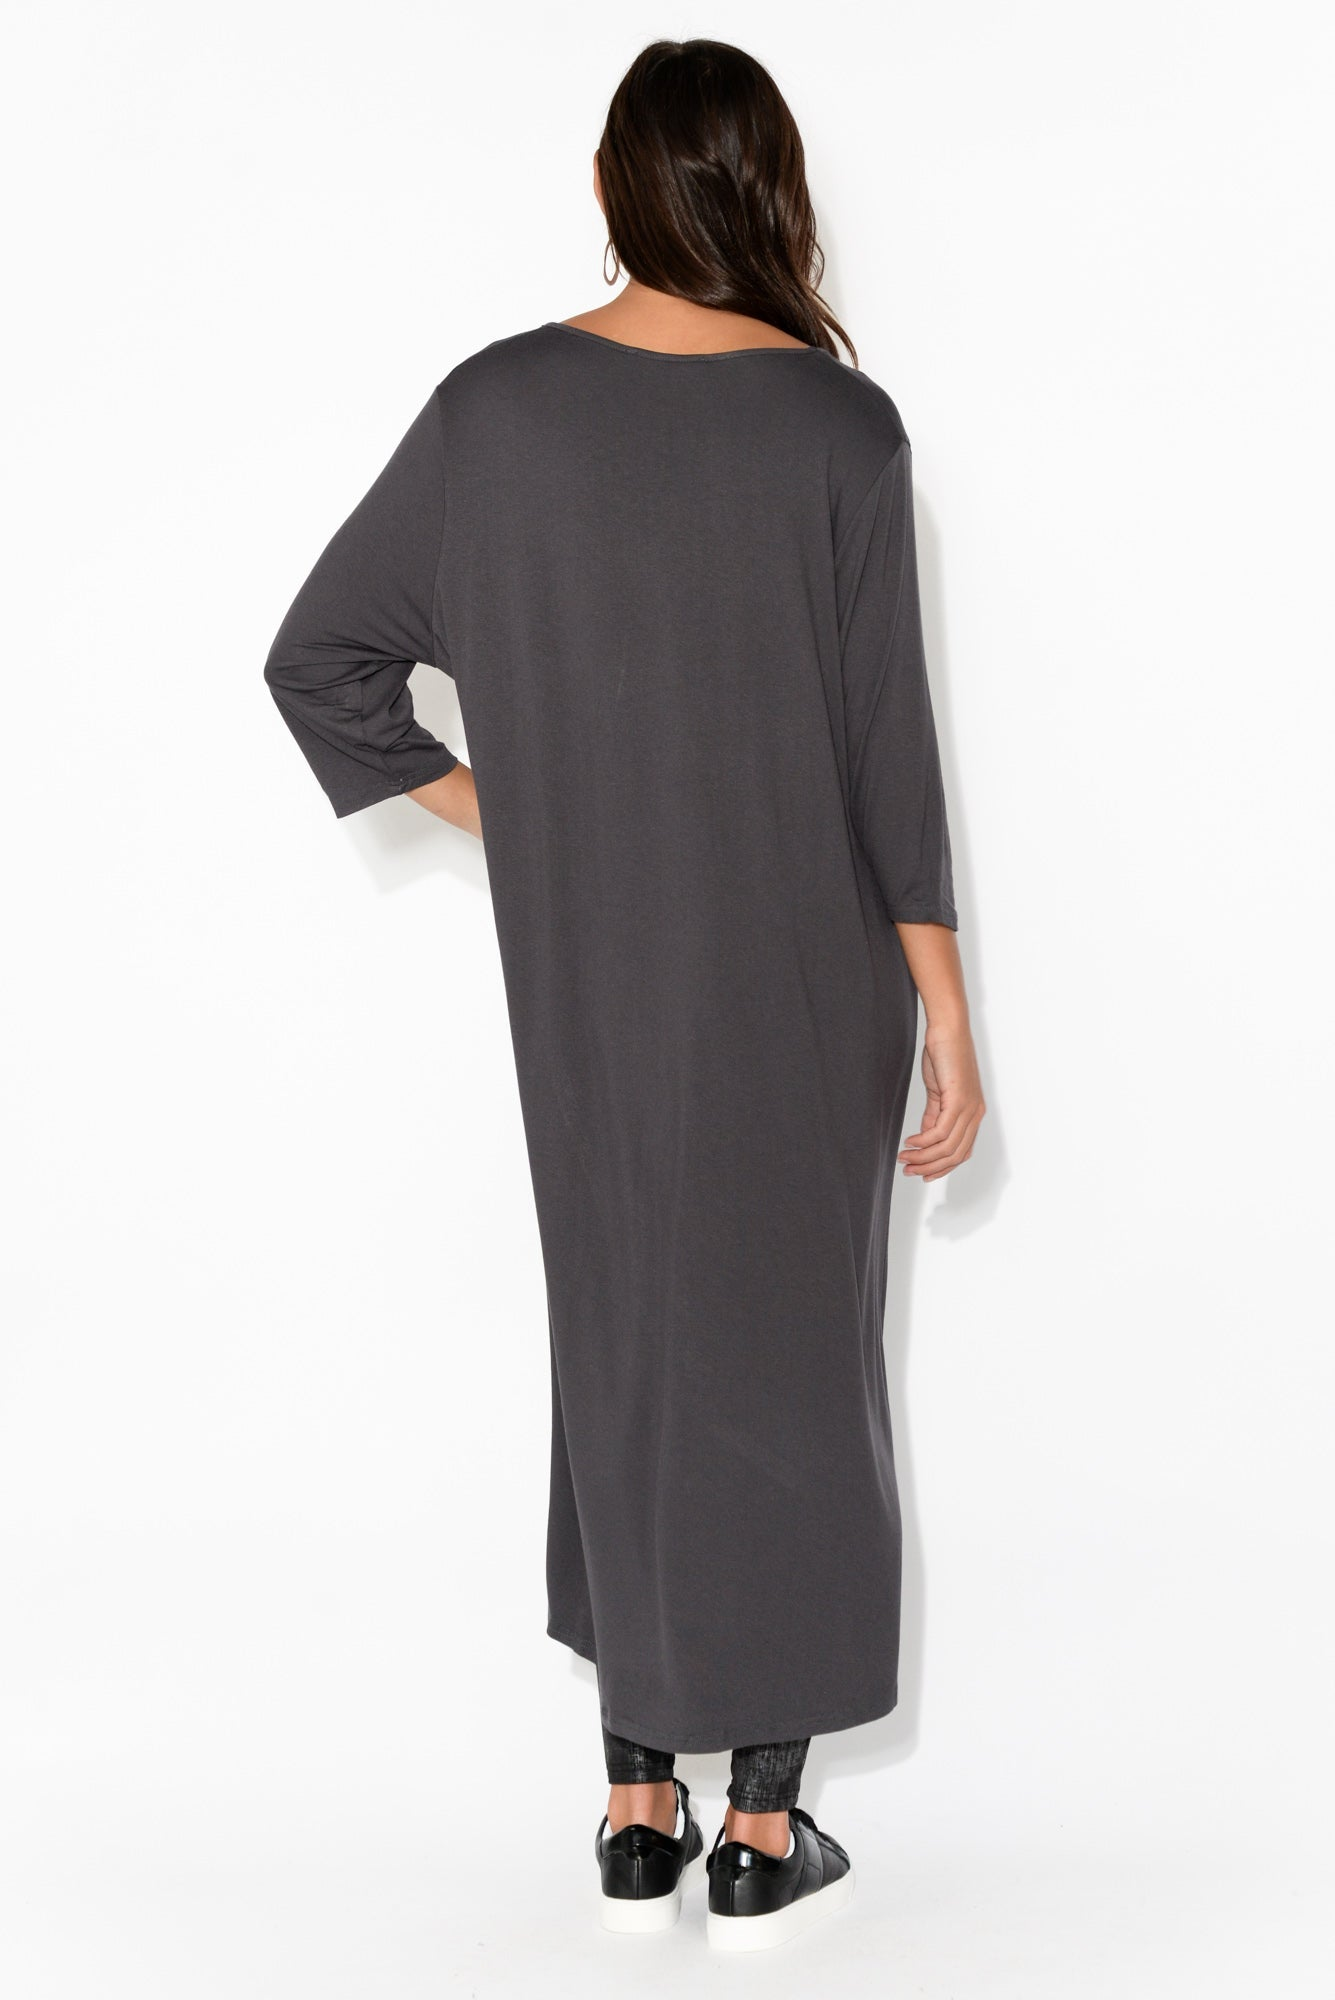 Charcoal Curved Hi Lo Tunic Top